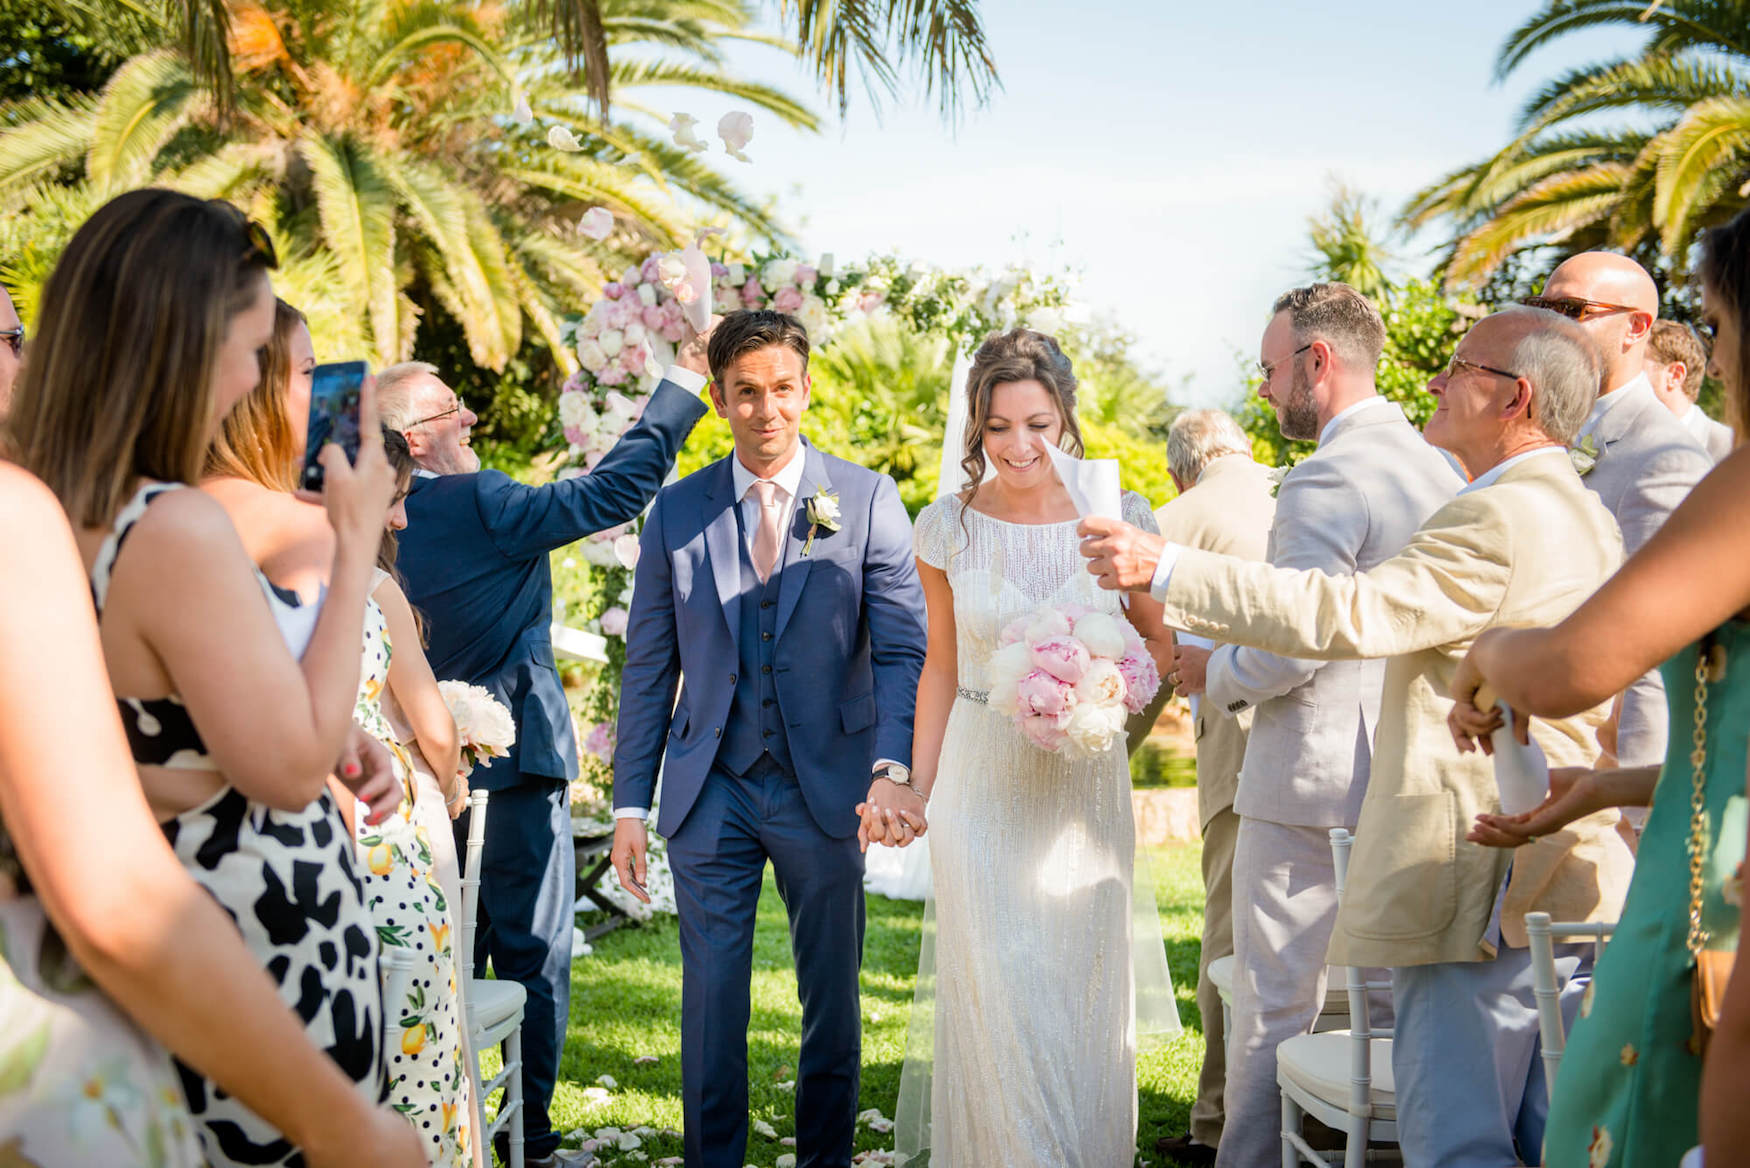 bride groom singing just married garden wedding ceremony palm trees